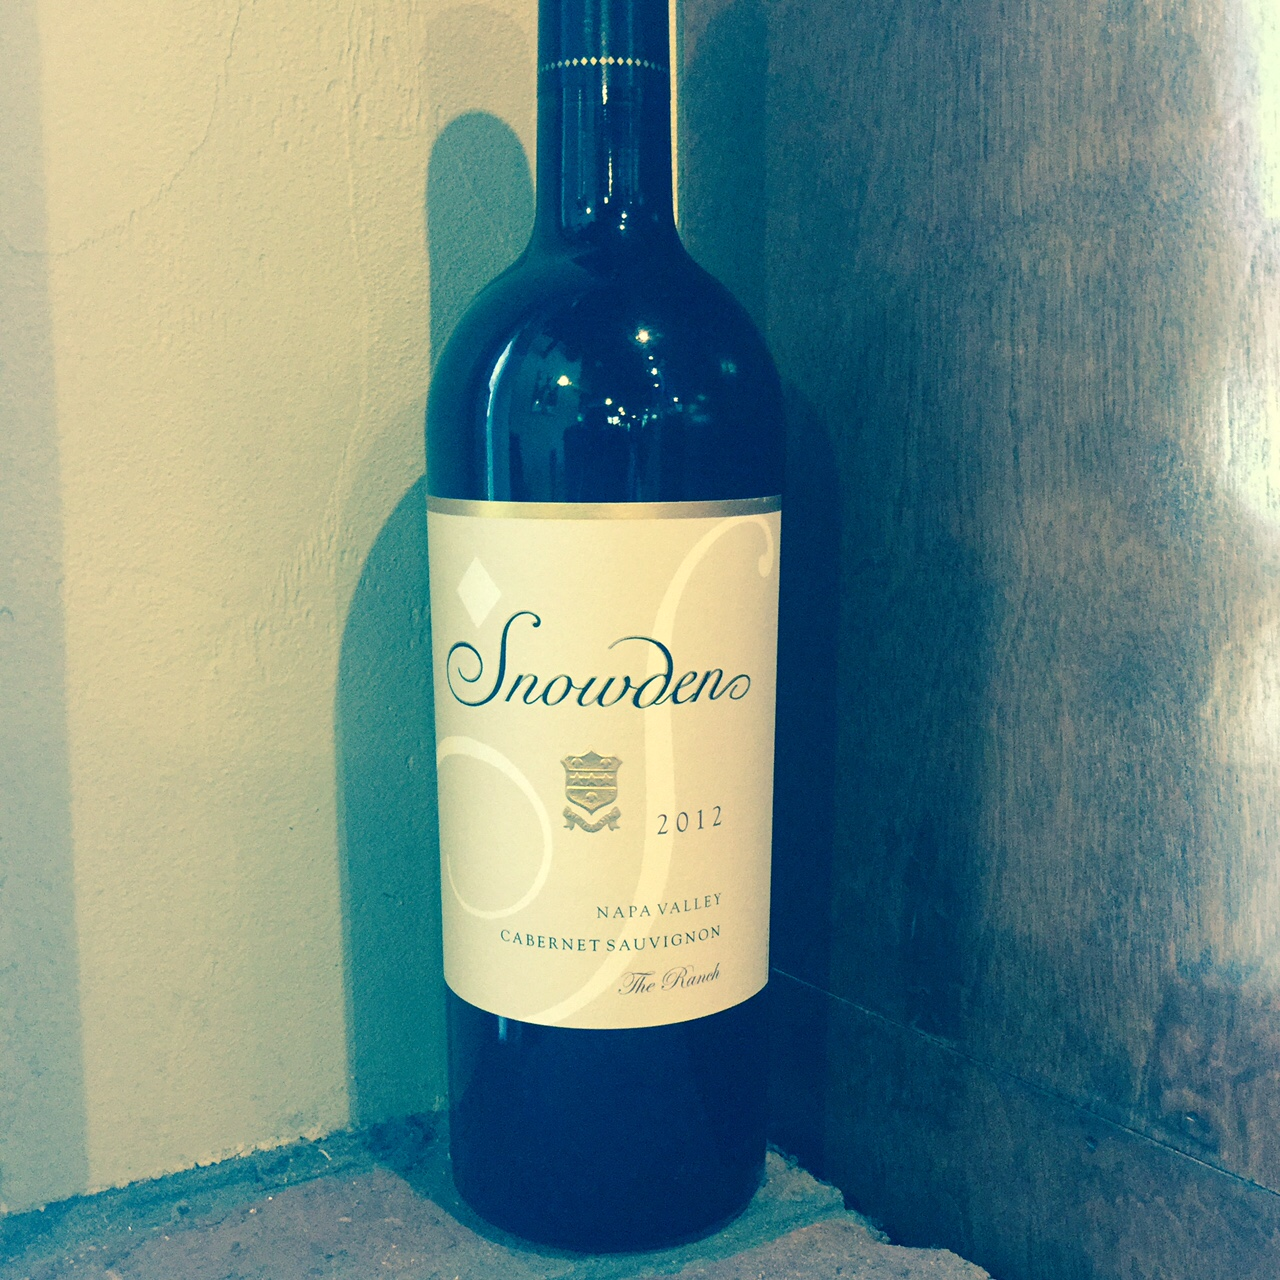 2012 Snowden Napa Valley Cabernet The Ranch